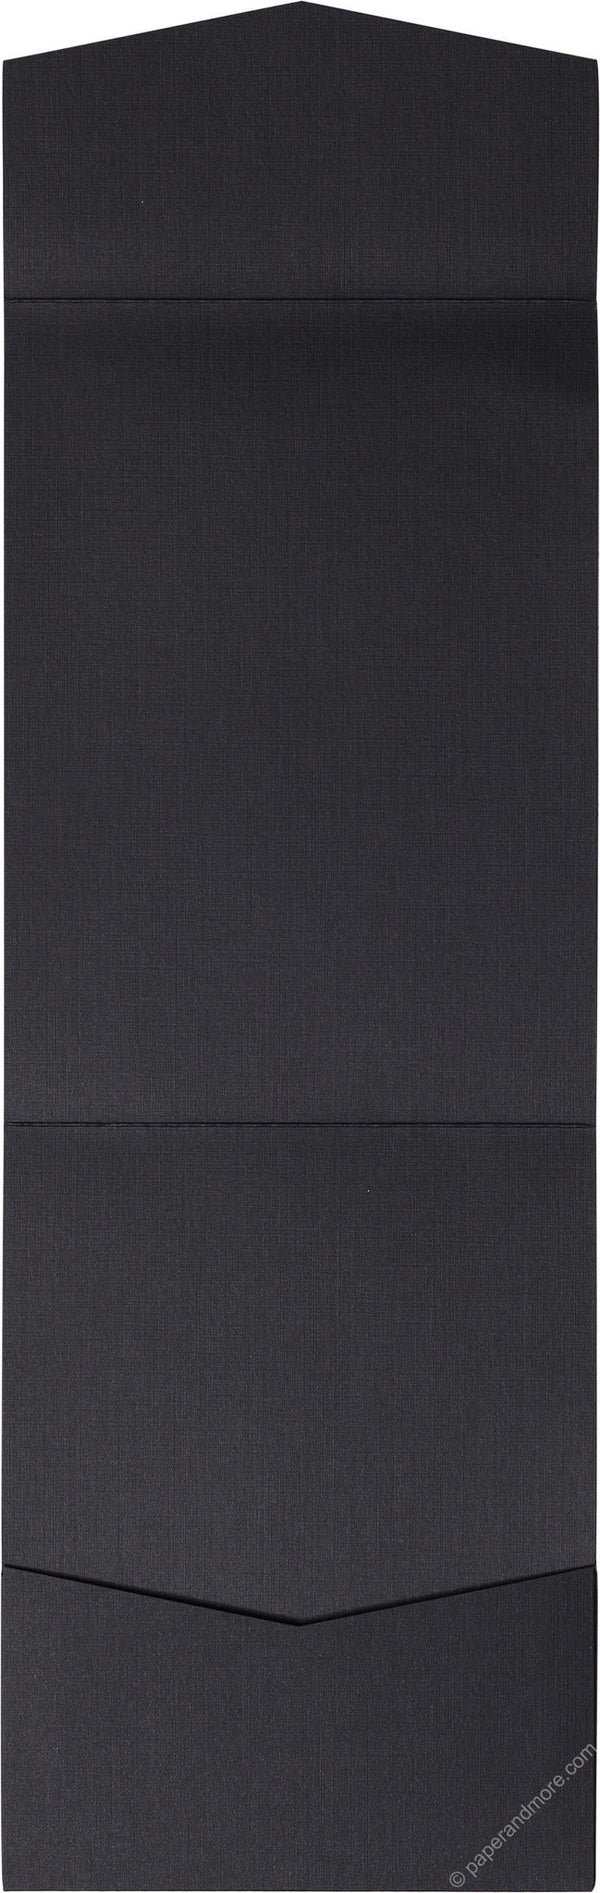 Epic Black Linen Pocket Invitation Card, A7 Cascade - Paperandmore.com